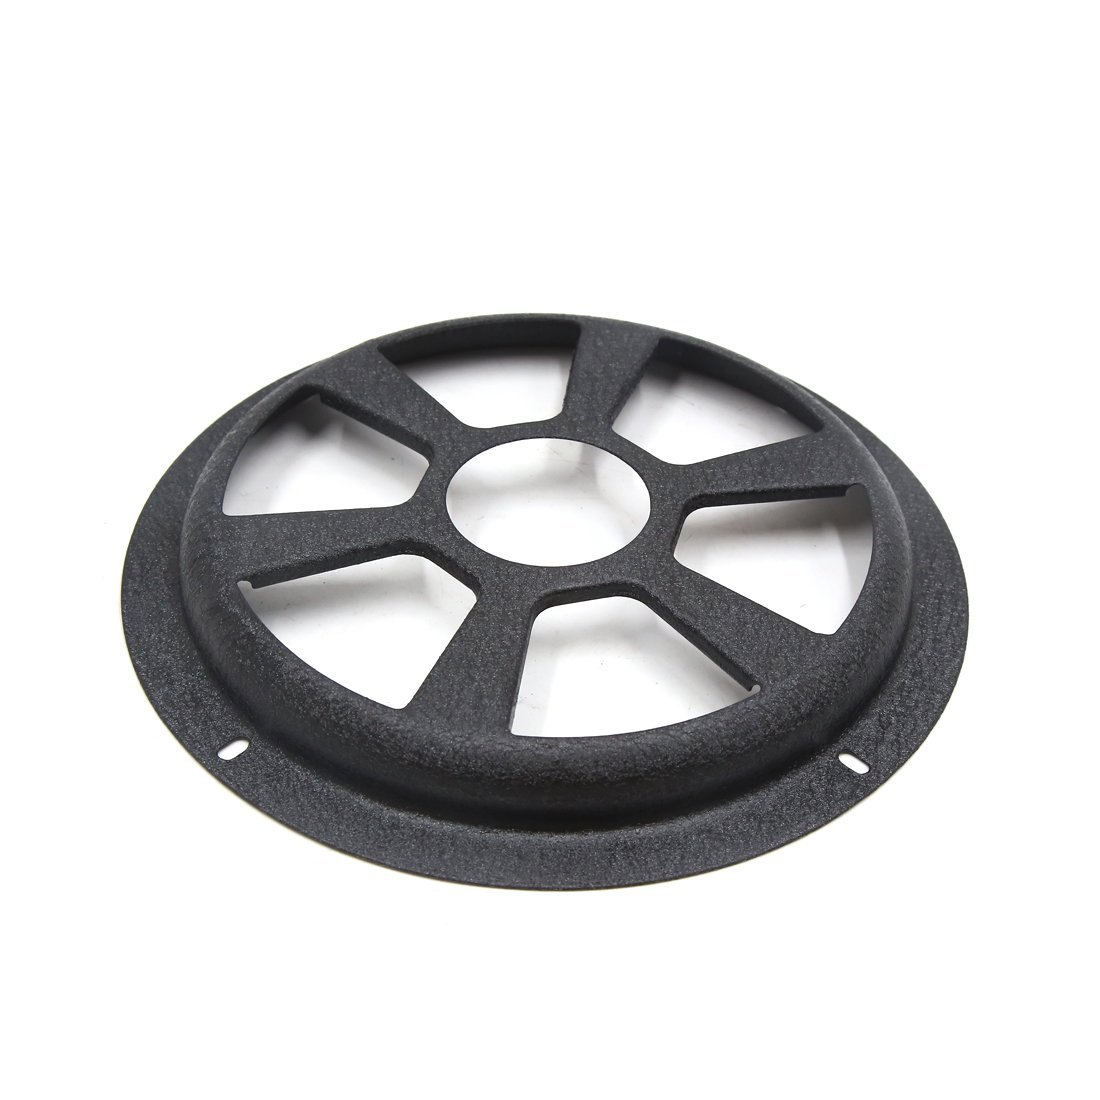 uxcell 8 Inch Dia Iron Car Vehicle Audio Speaker Subwoofer Grill Protective Cover by uxcell (Image #1)